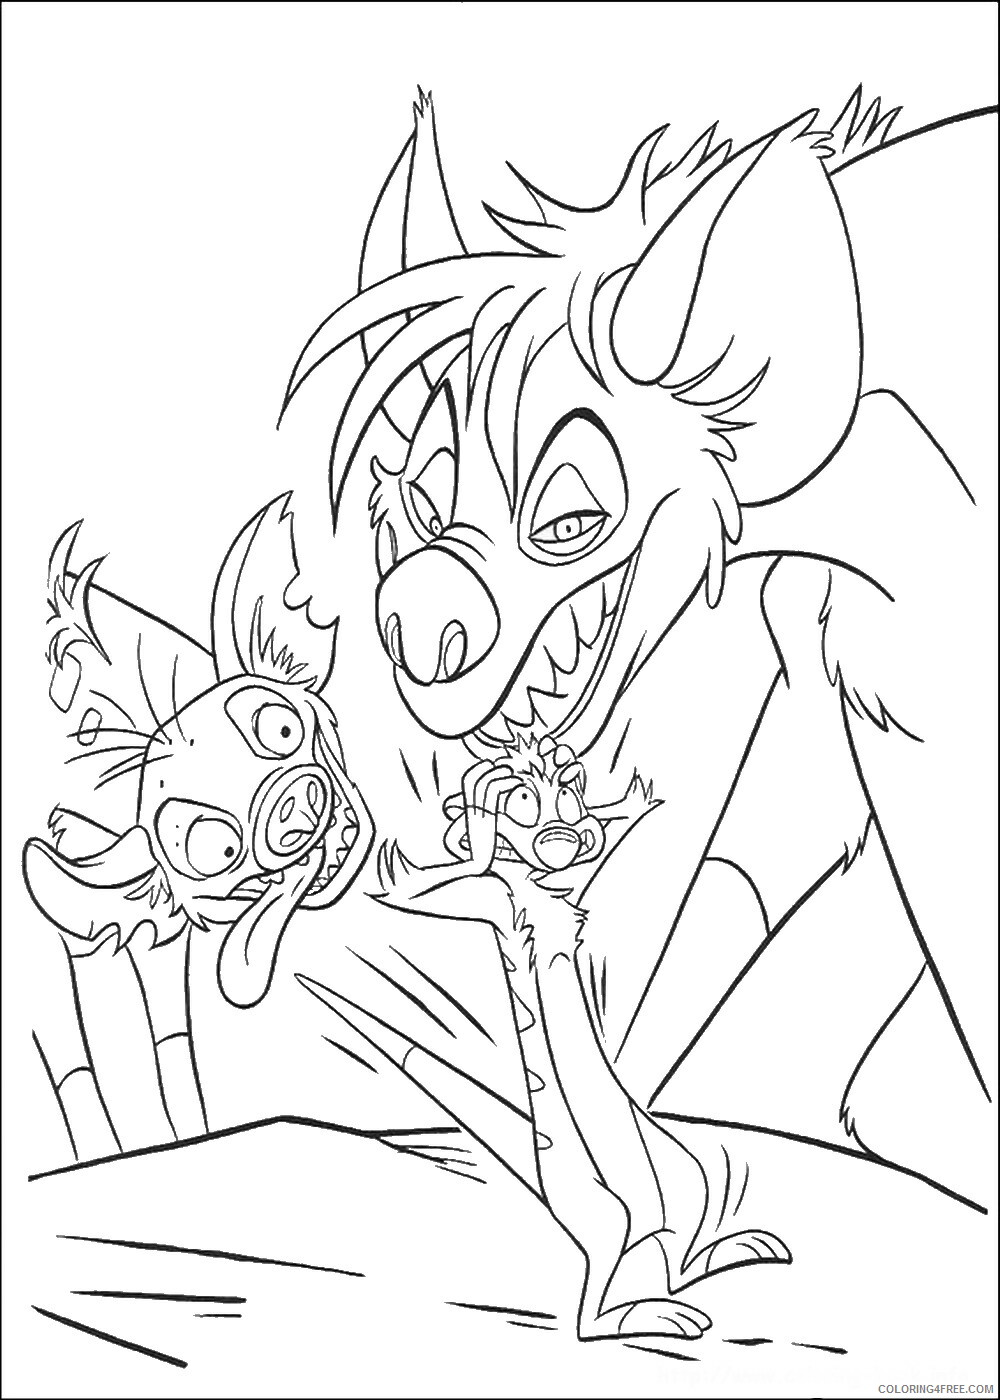 The Lion King Coloring Pages TV Film lionking_35 Printable 2020 09160 Coloring4free